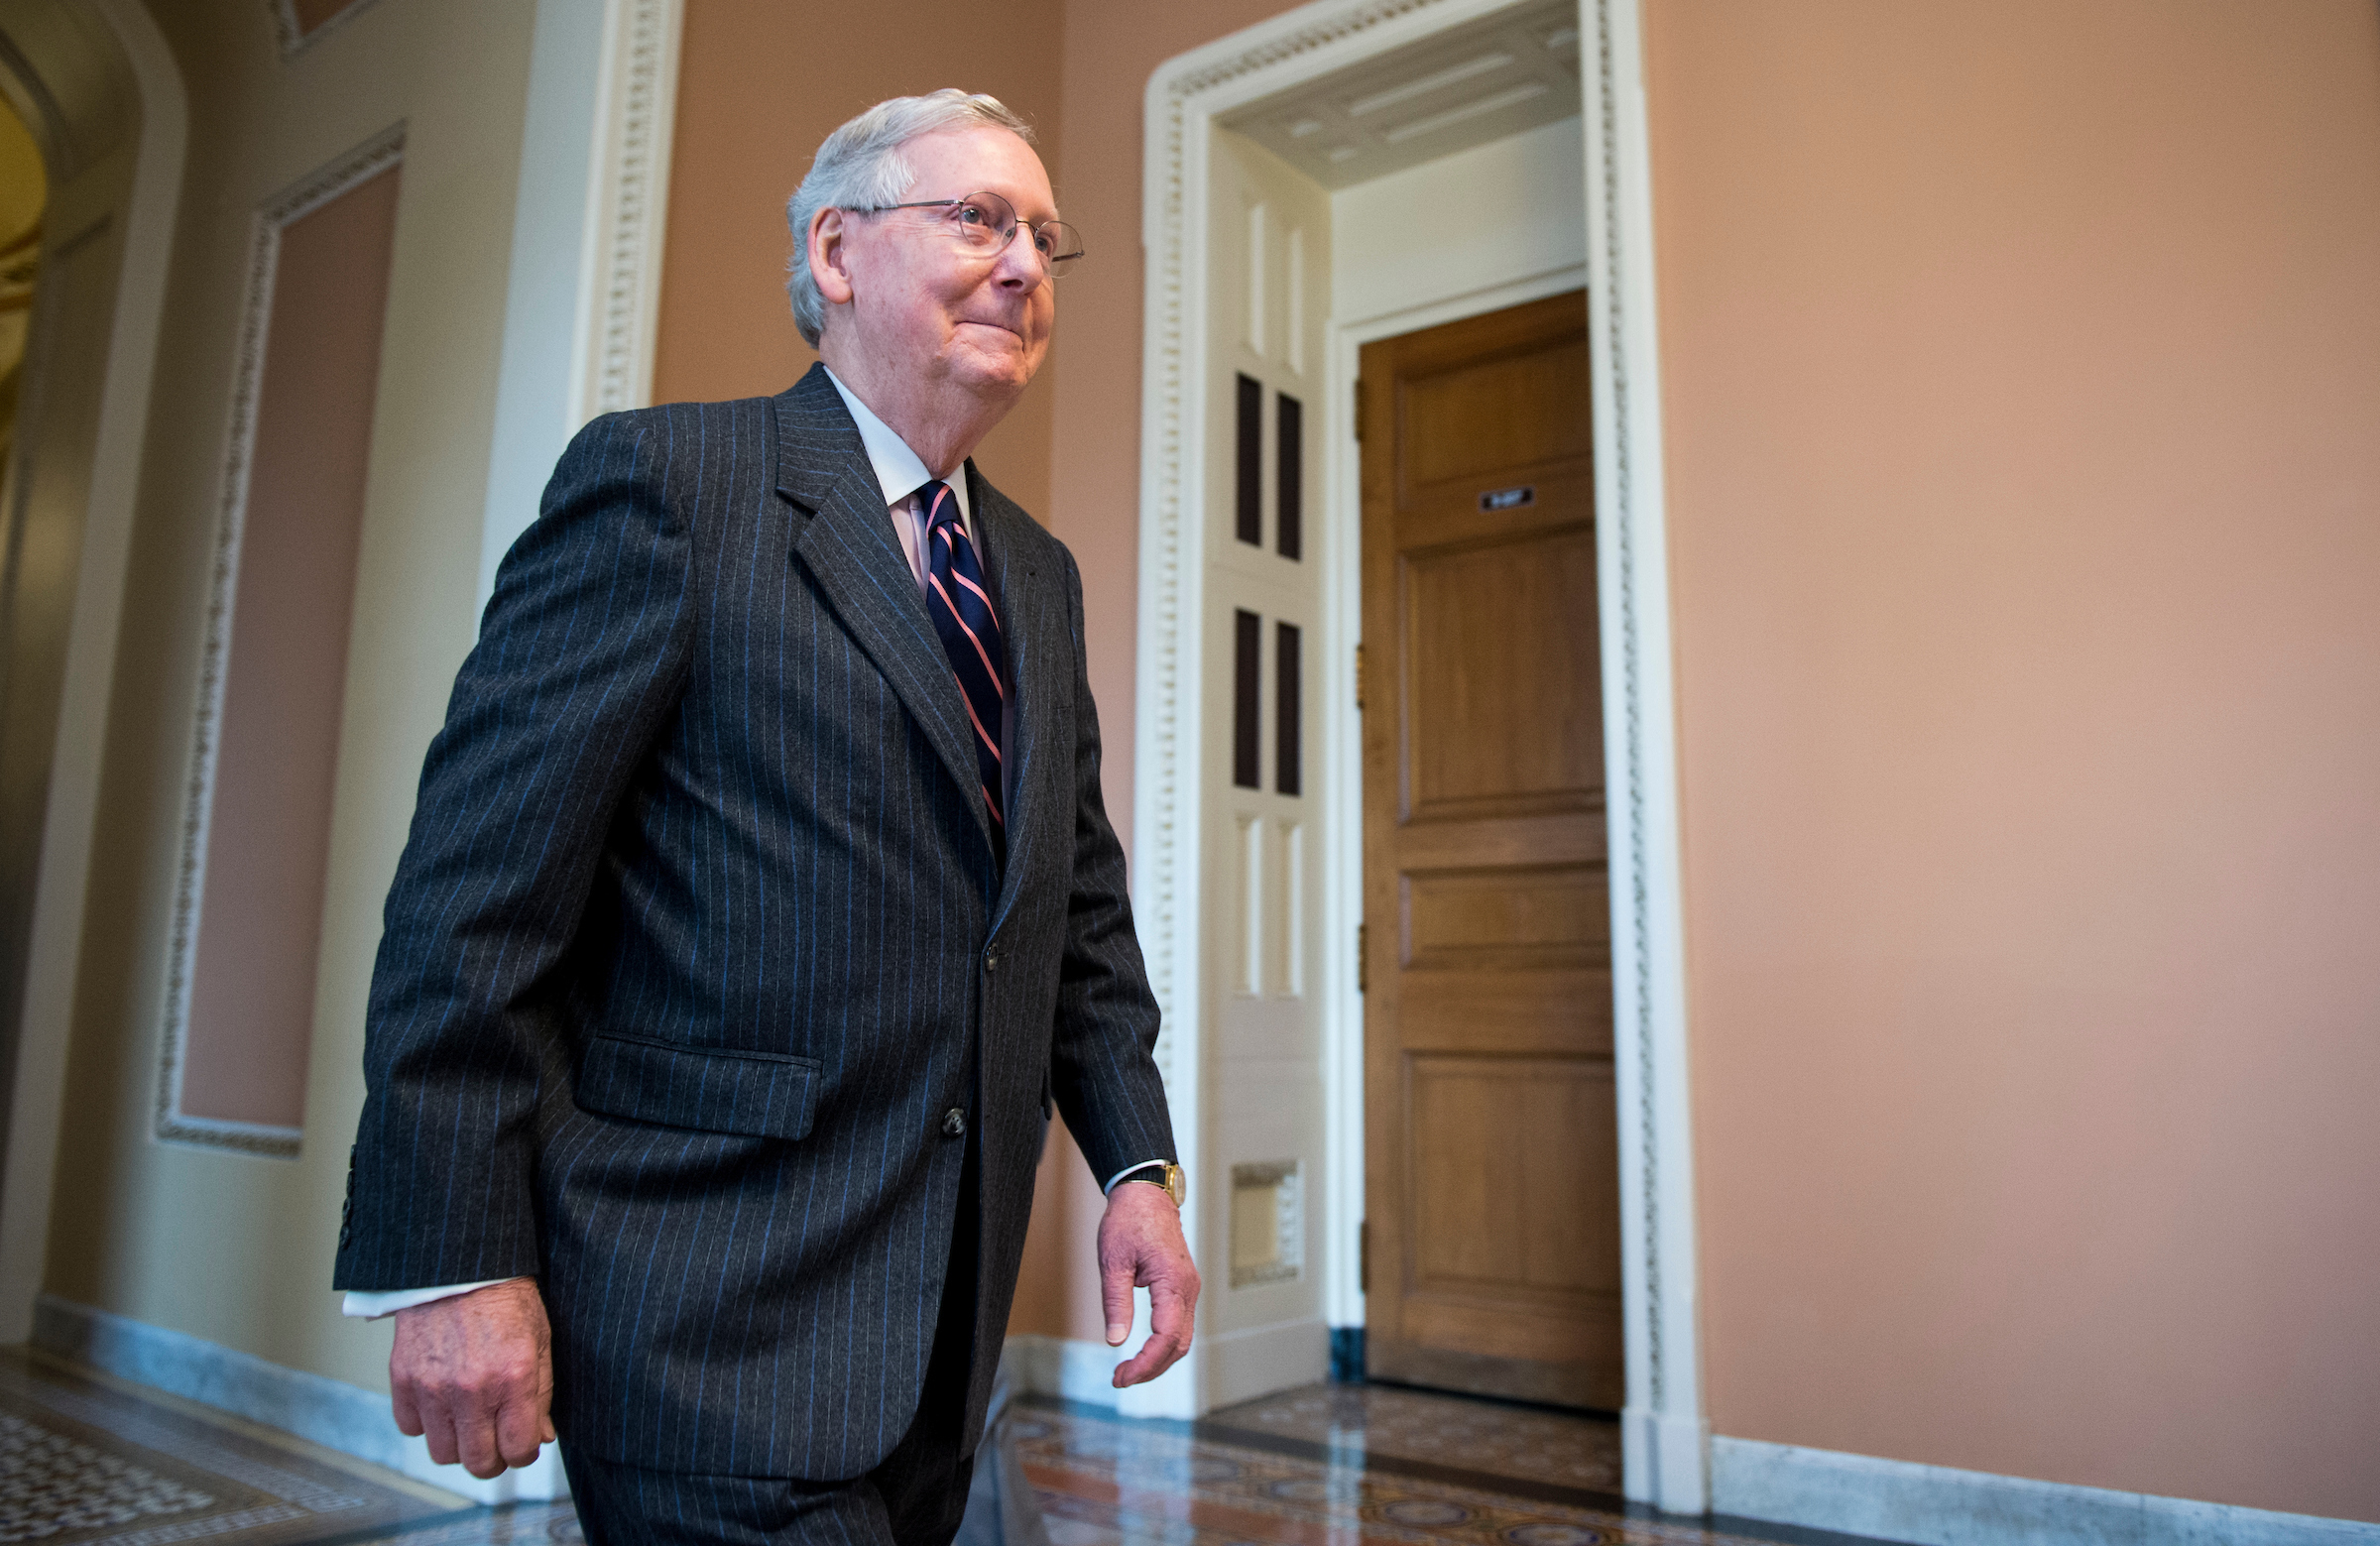 UNITED STATES - FEBRUARY 7: Senate Majority Leader Mitch McConnell, R-Ky., walks back to his office following the vote to confirm Betsy Devos to be Secretary of Education on Tuesday, Feb. 7, 2017. (Photo By Bill Clark/CQ Roll Call)